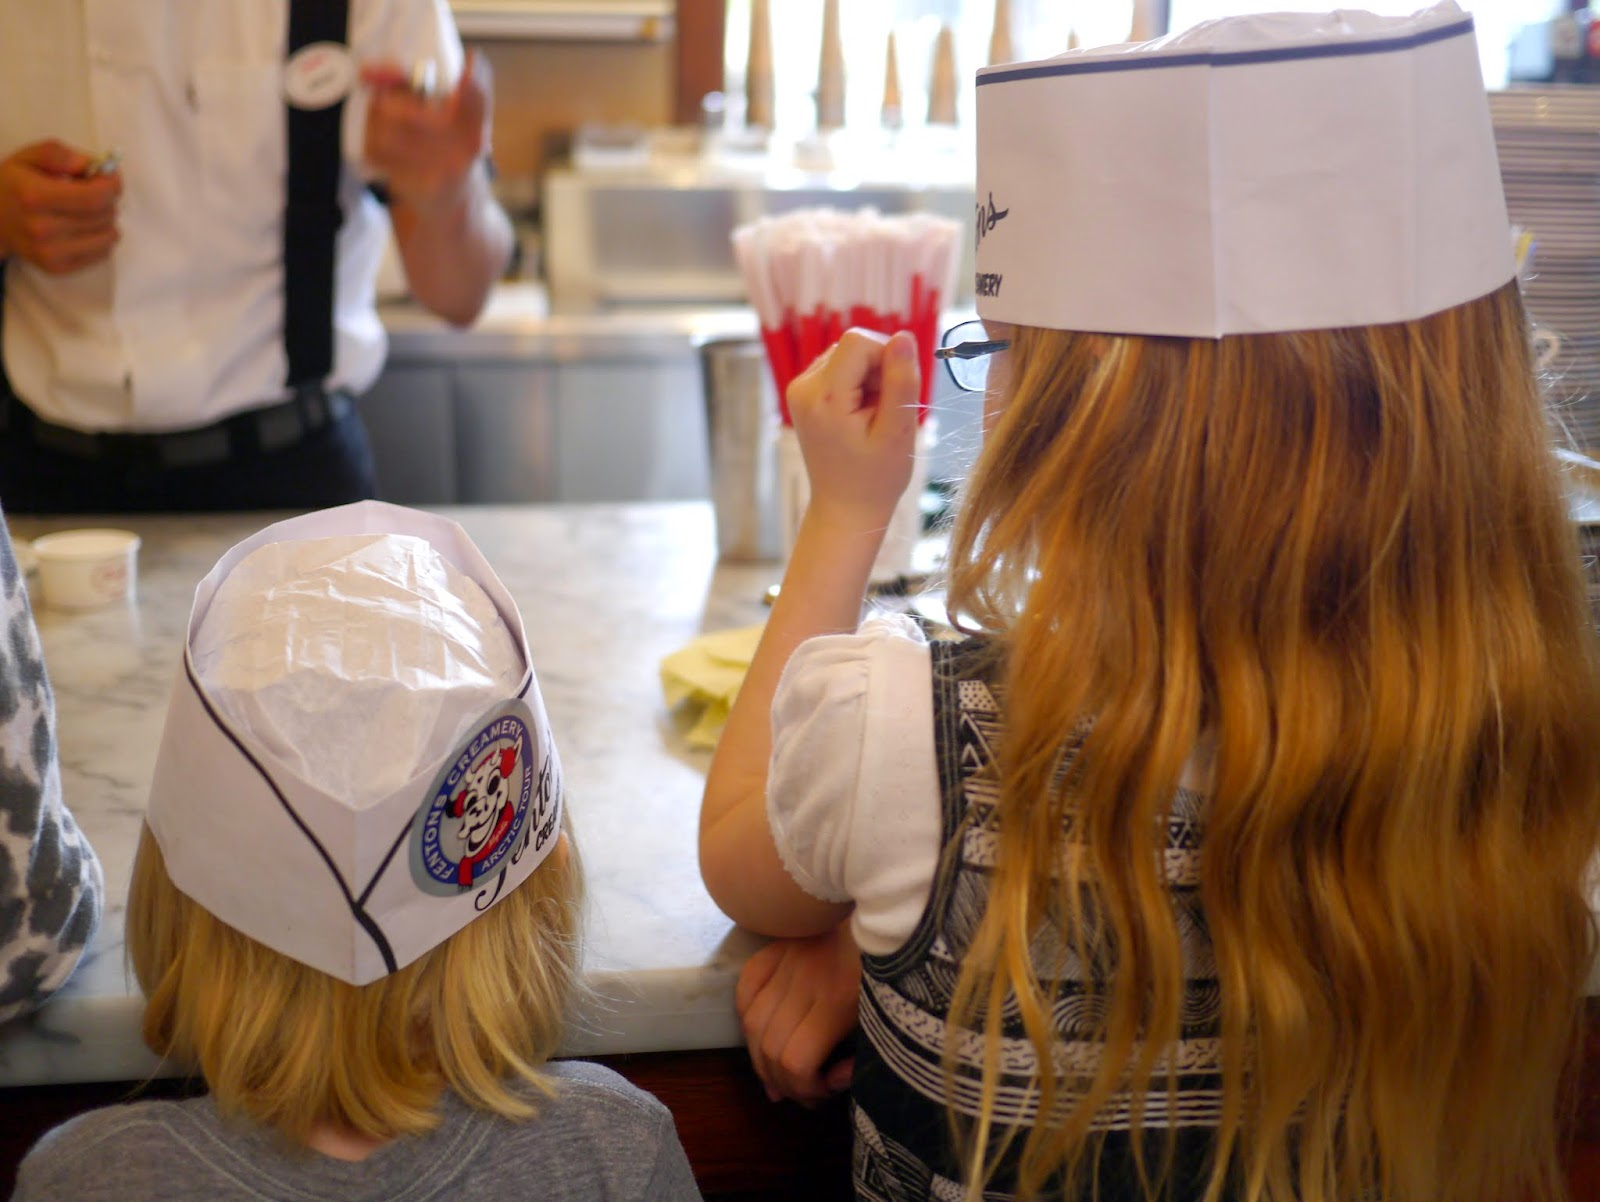 we then headed out the back to learn how make their ice cream we watched a staff member make cookies and cream ice cream and tasted it fresh